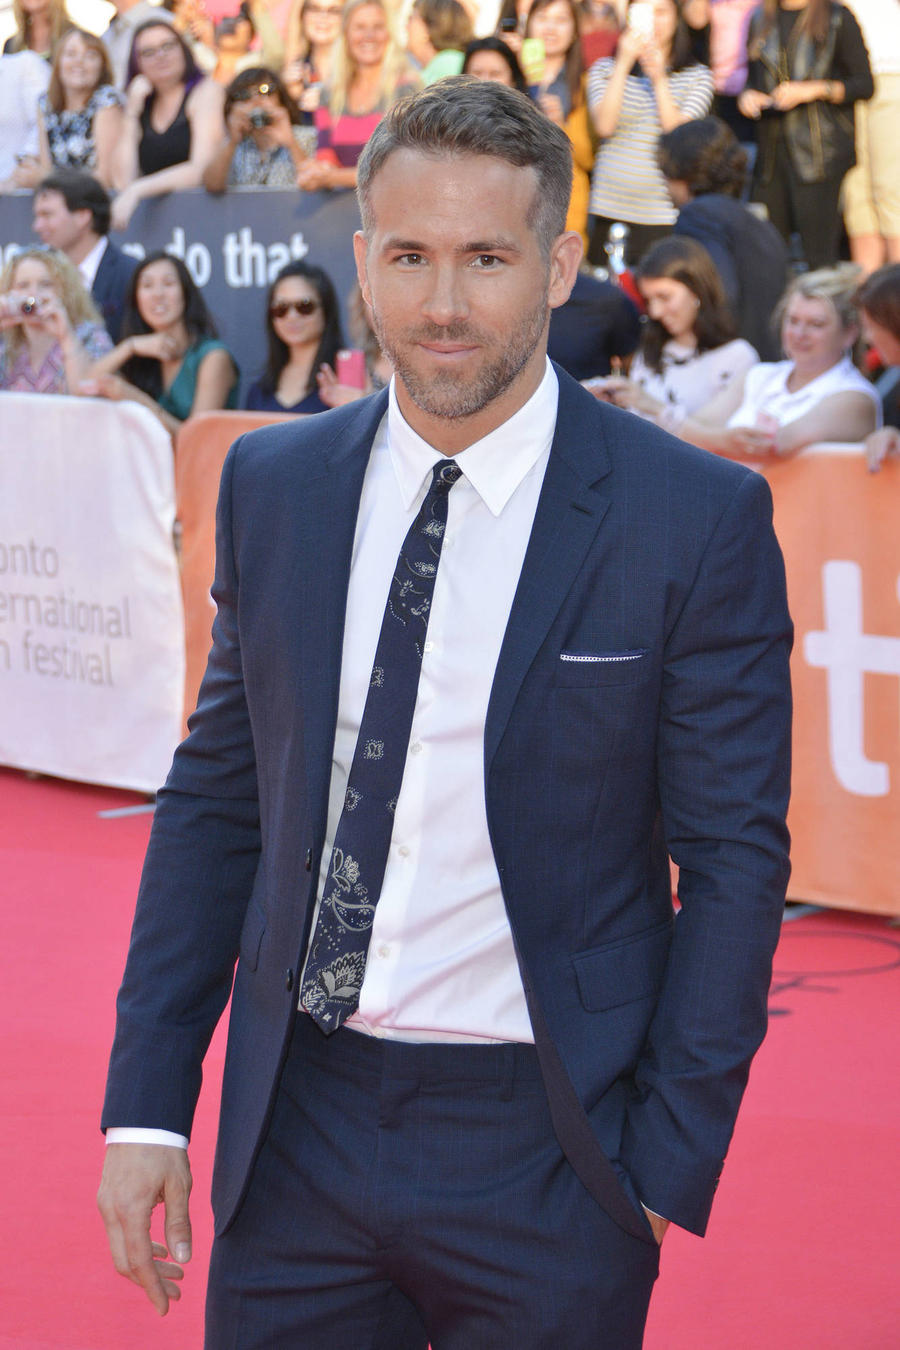 Ryan Reynolds Set Up Twitter To Troll Himself